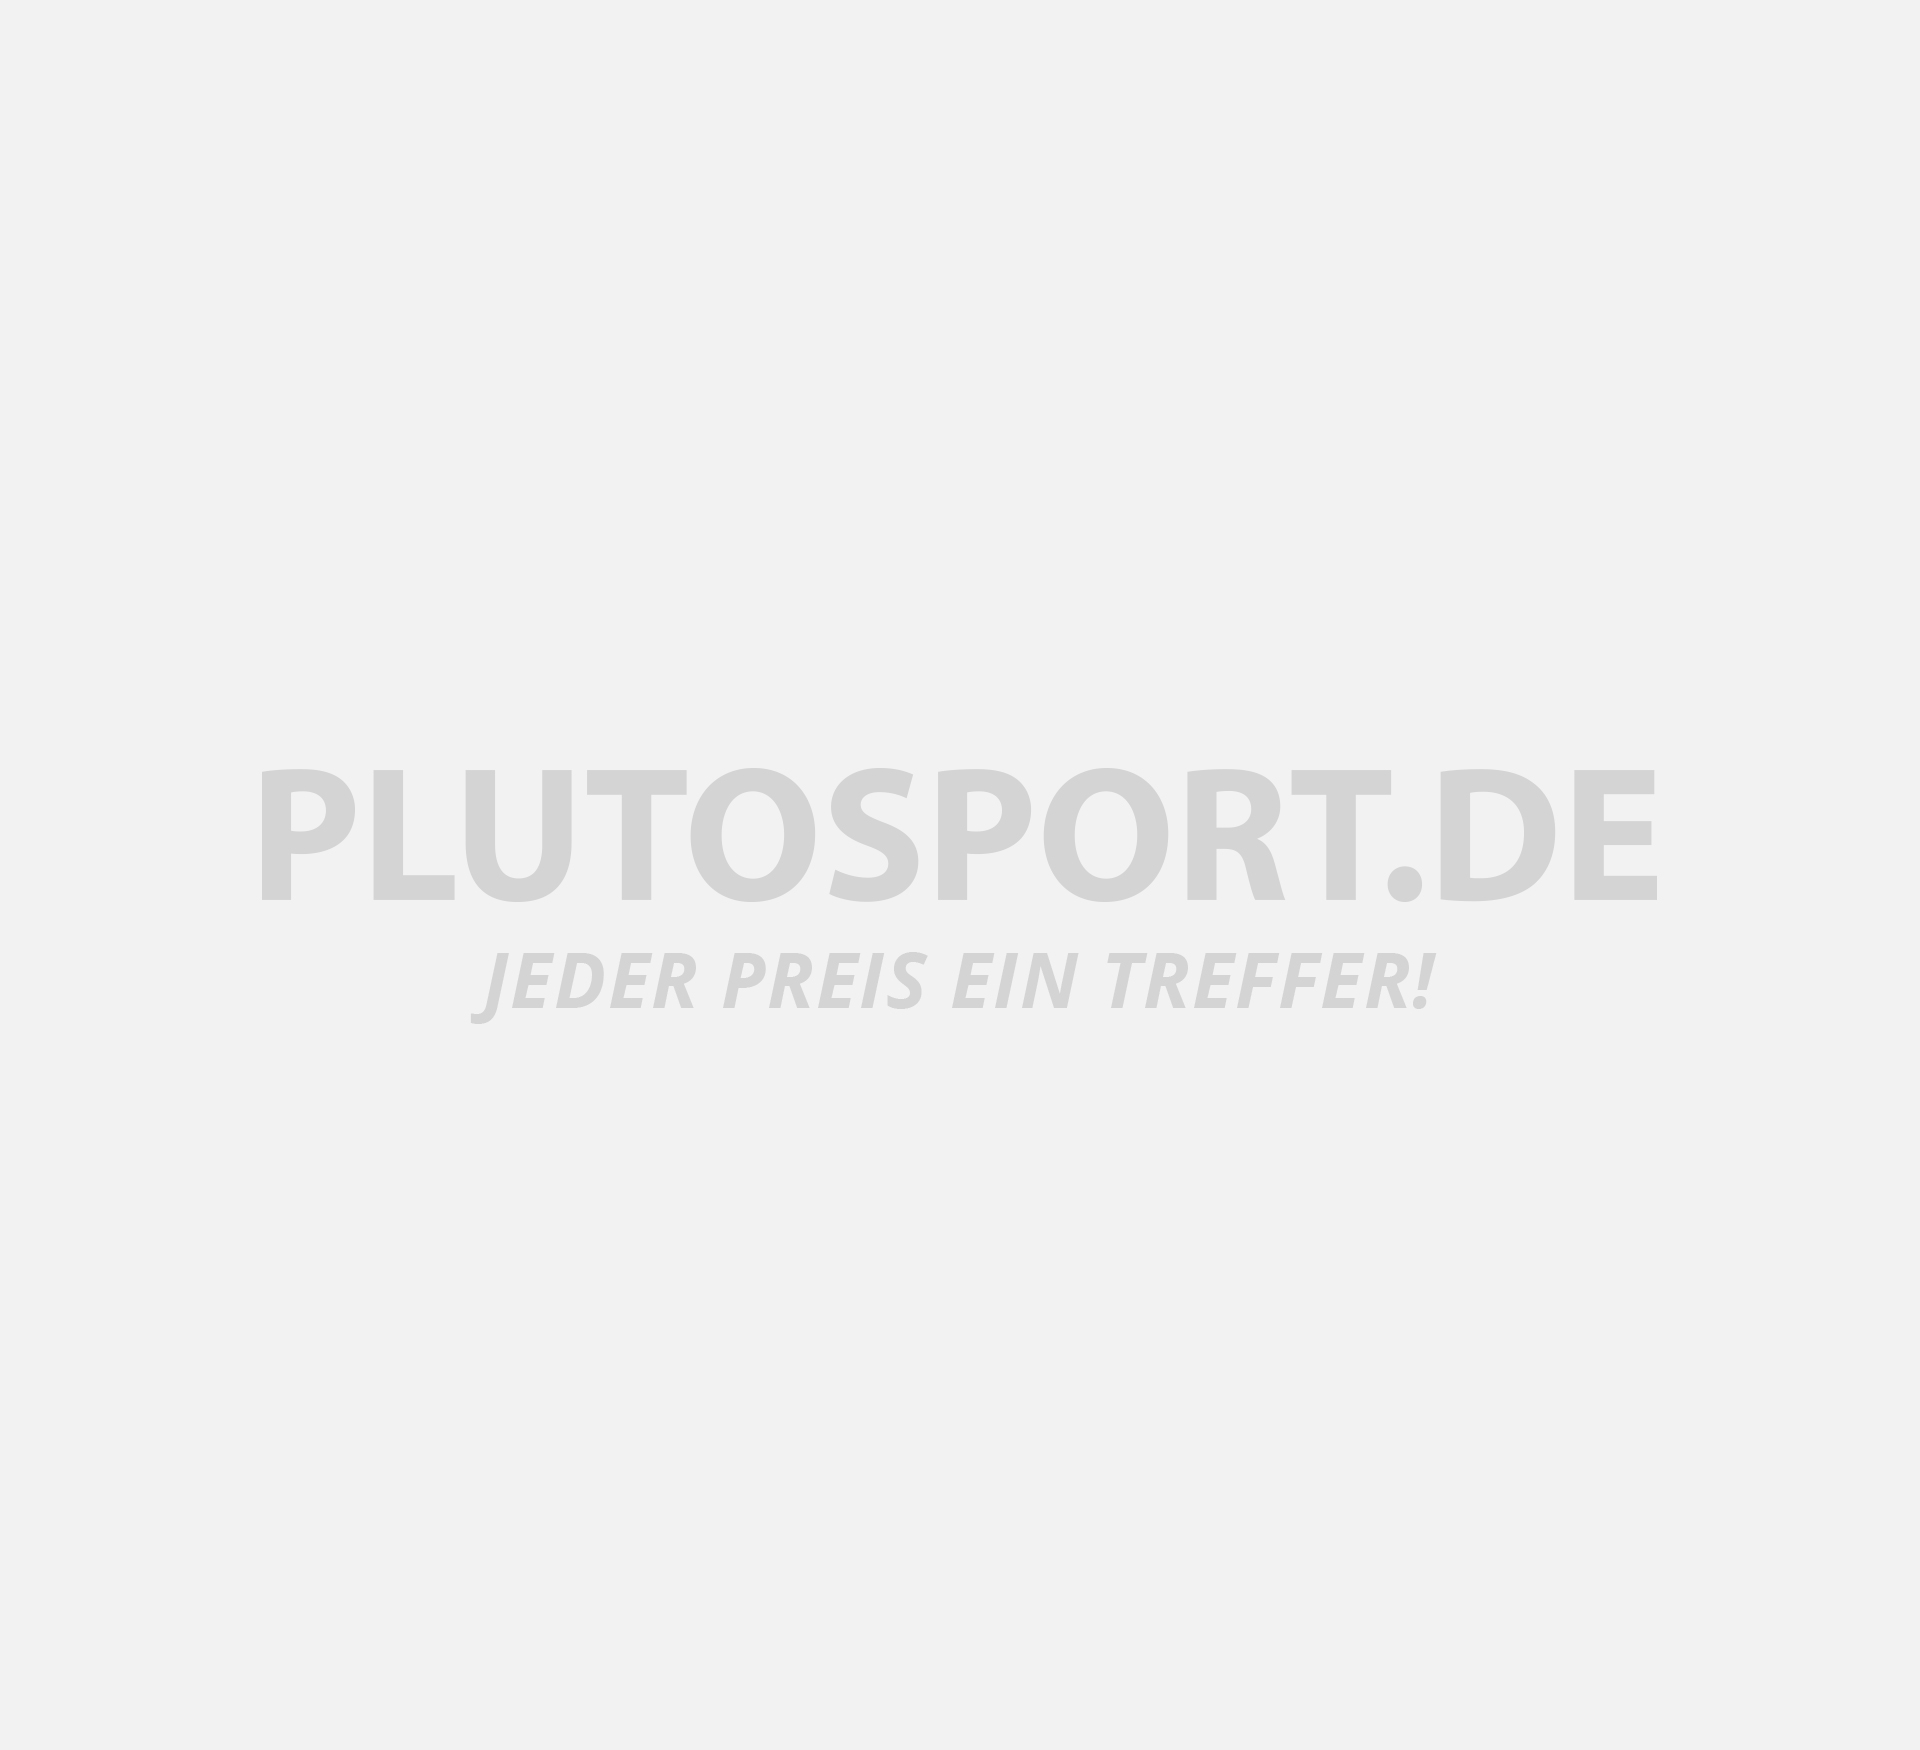 Wicked Twincam ILQ 9 CL Bearings (16-pack)